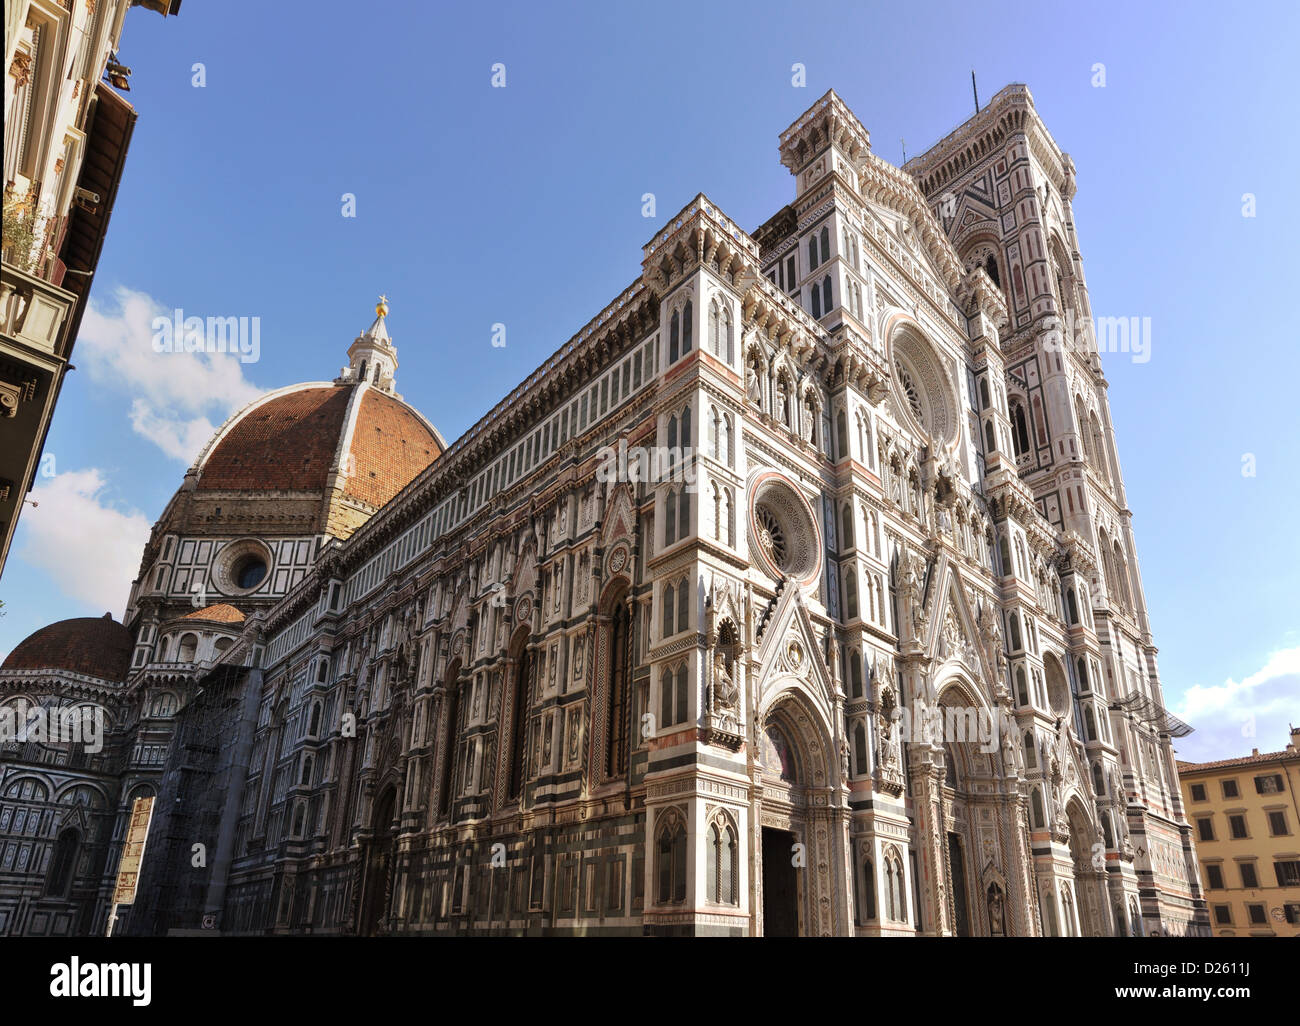 Duomo cathedral is one of the most famous landmark in Florence, Italy - Stock Image